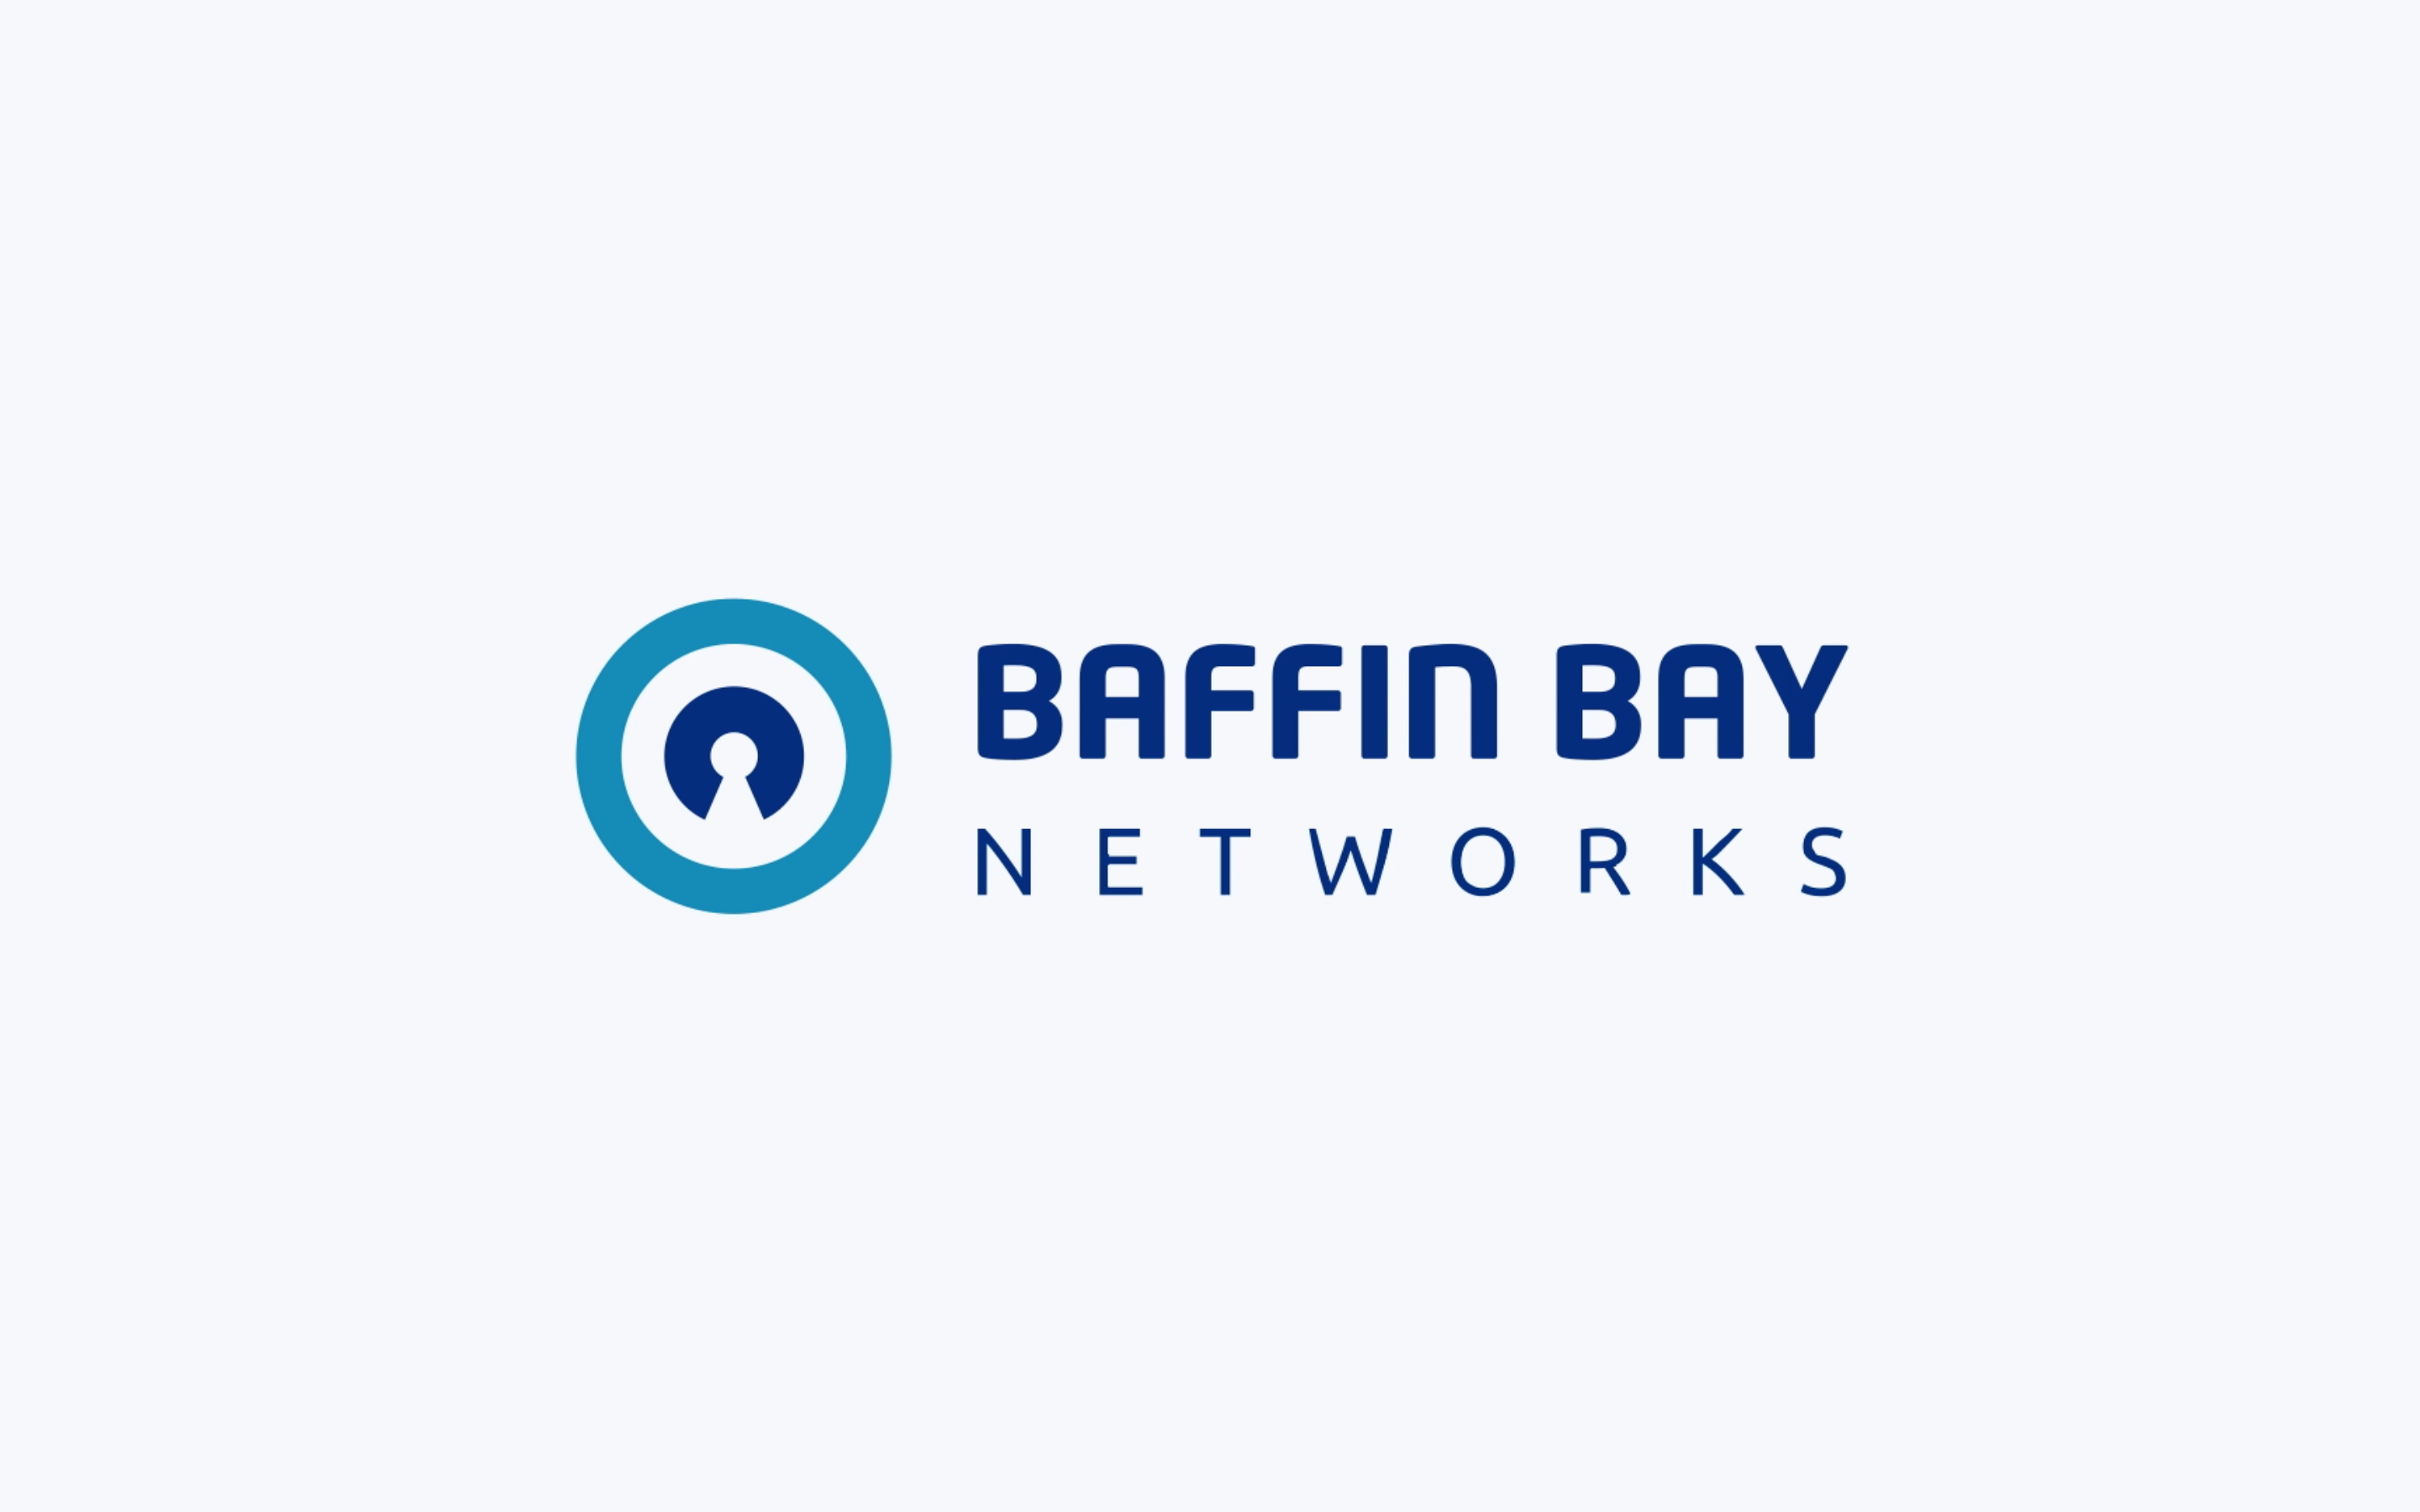 Baffin Bay Networks Animationsfilm Flat Design 1